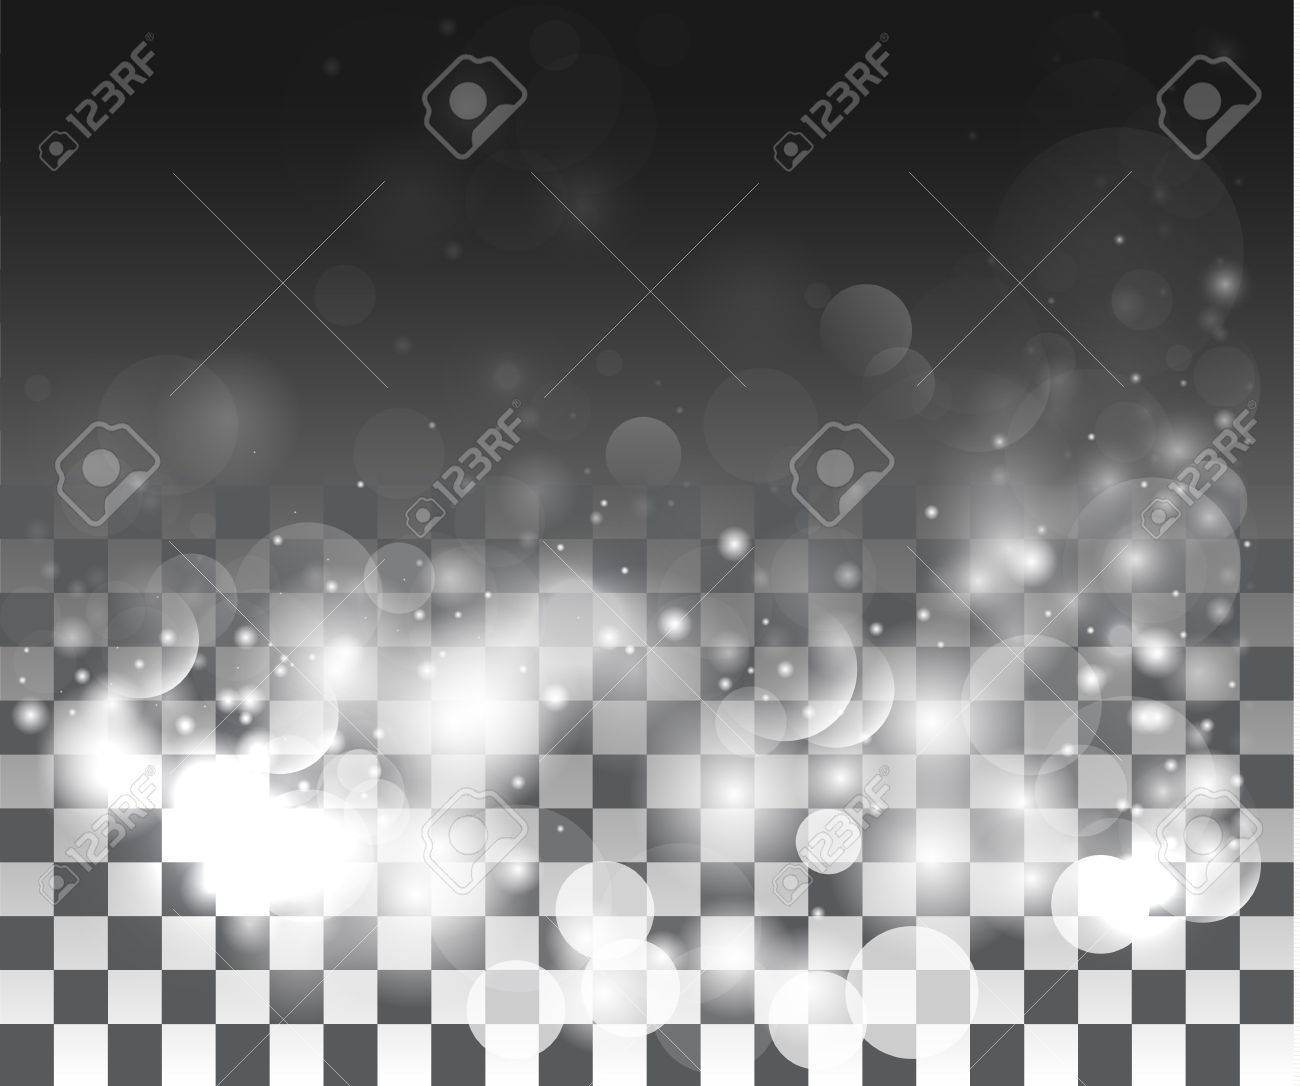 Background image effects - Vector Special Effects On A Transparent Background Stock Vector 39521920